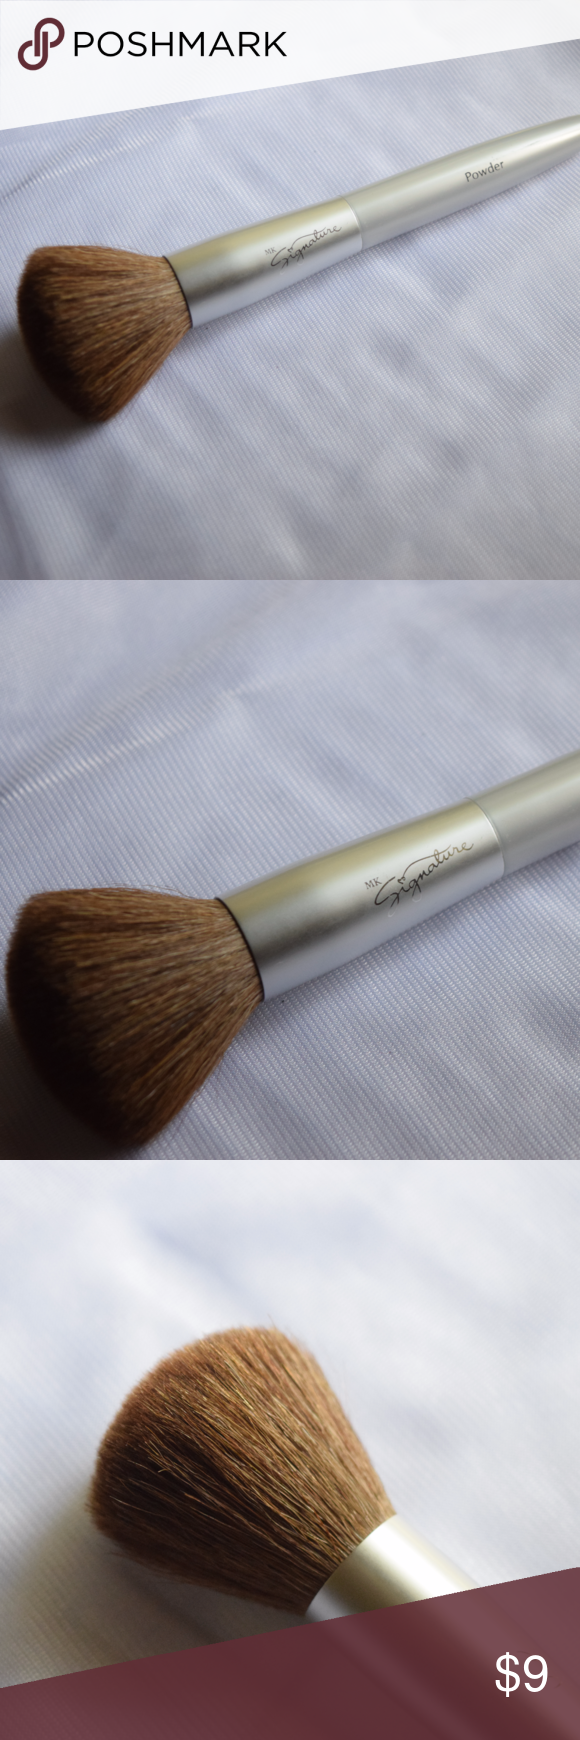 Mary Kay Powder Makeup Brush Condition: used just a few times, in great condition! Has been cleaned.  Make an offer! Everything must go!! Don't forget about my bundle discount, and comment with any questions! Mary Kay Makeup Brushes & Tools